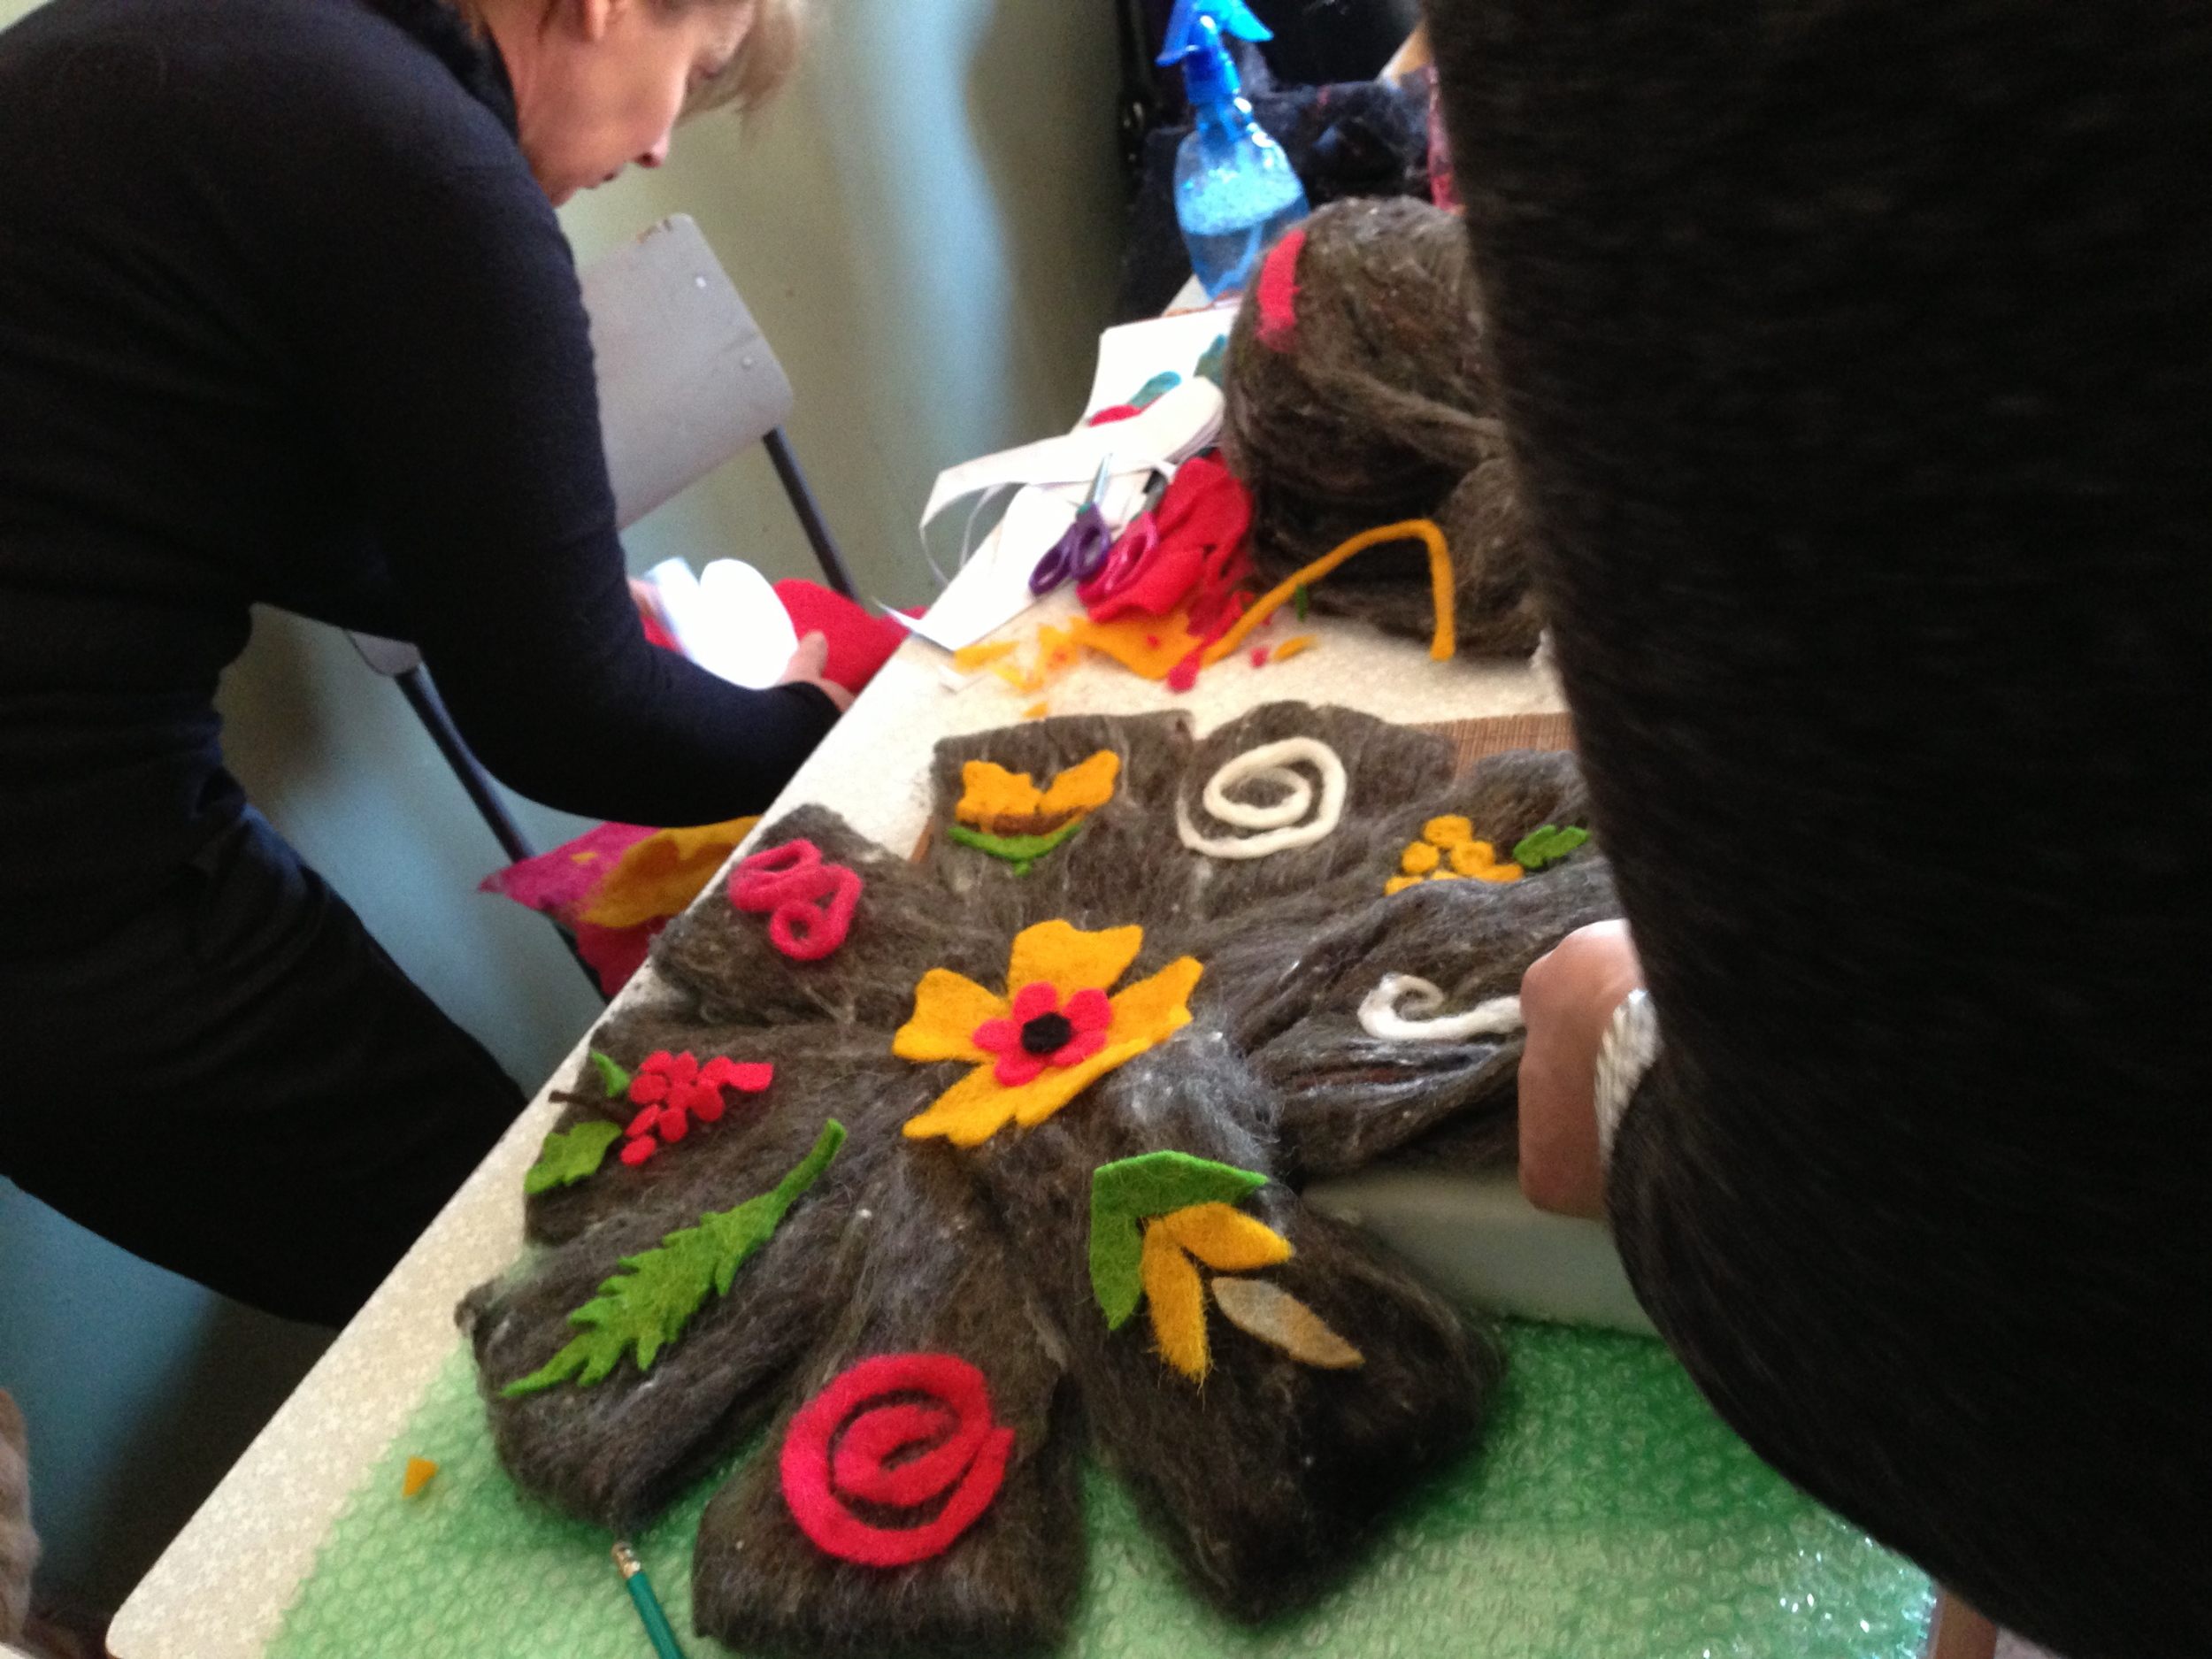 Felt book in progress, Alvani School, 2013